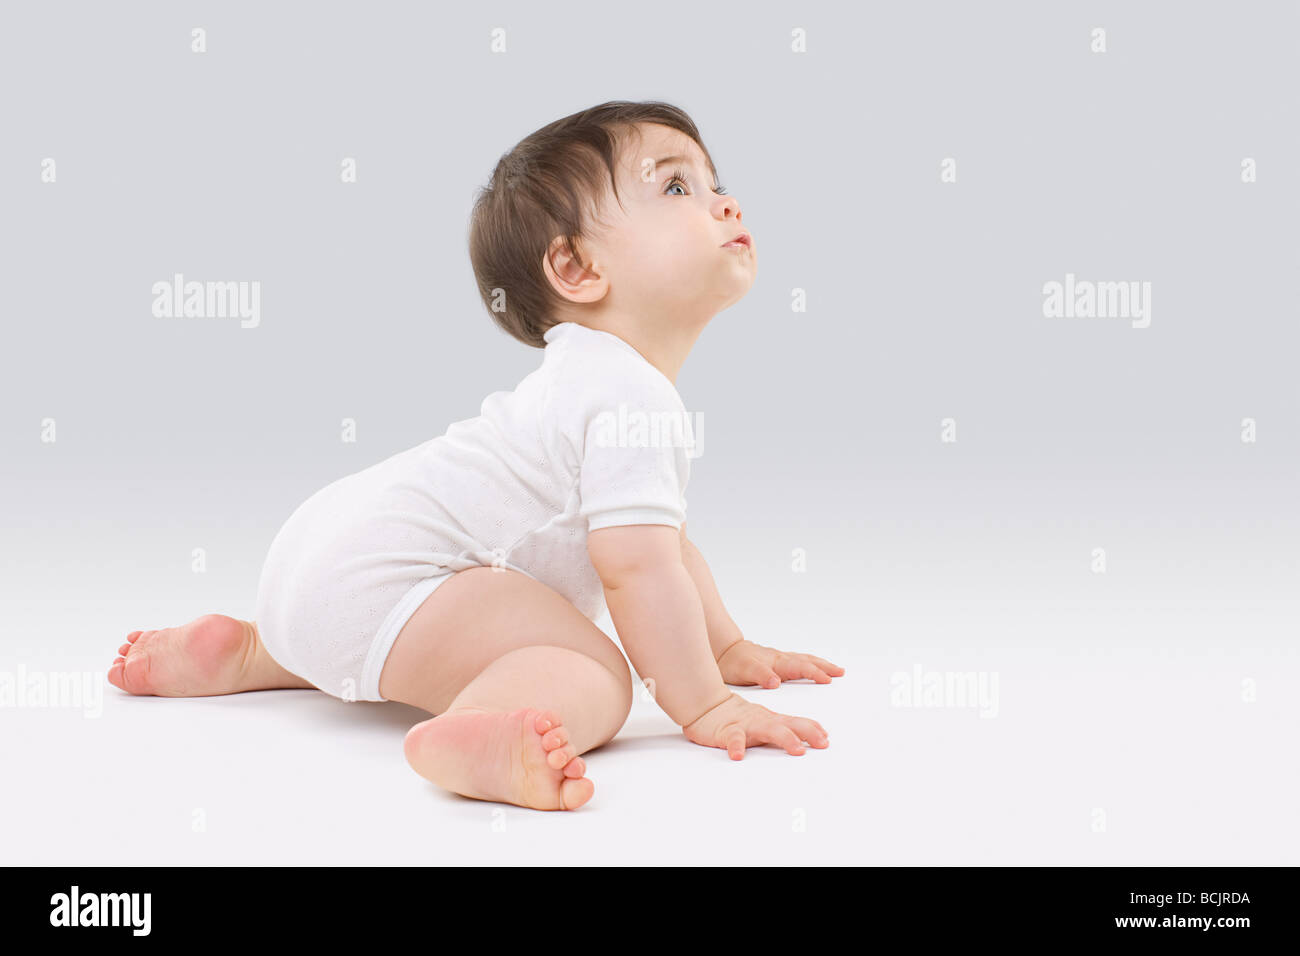 Baby looking up - Stock Image